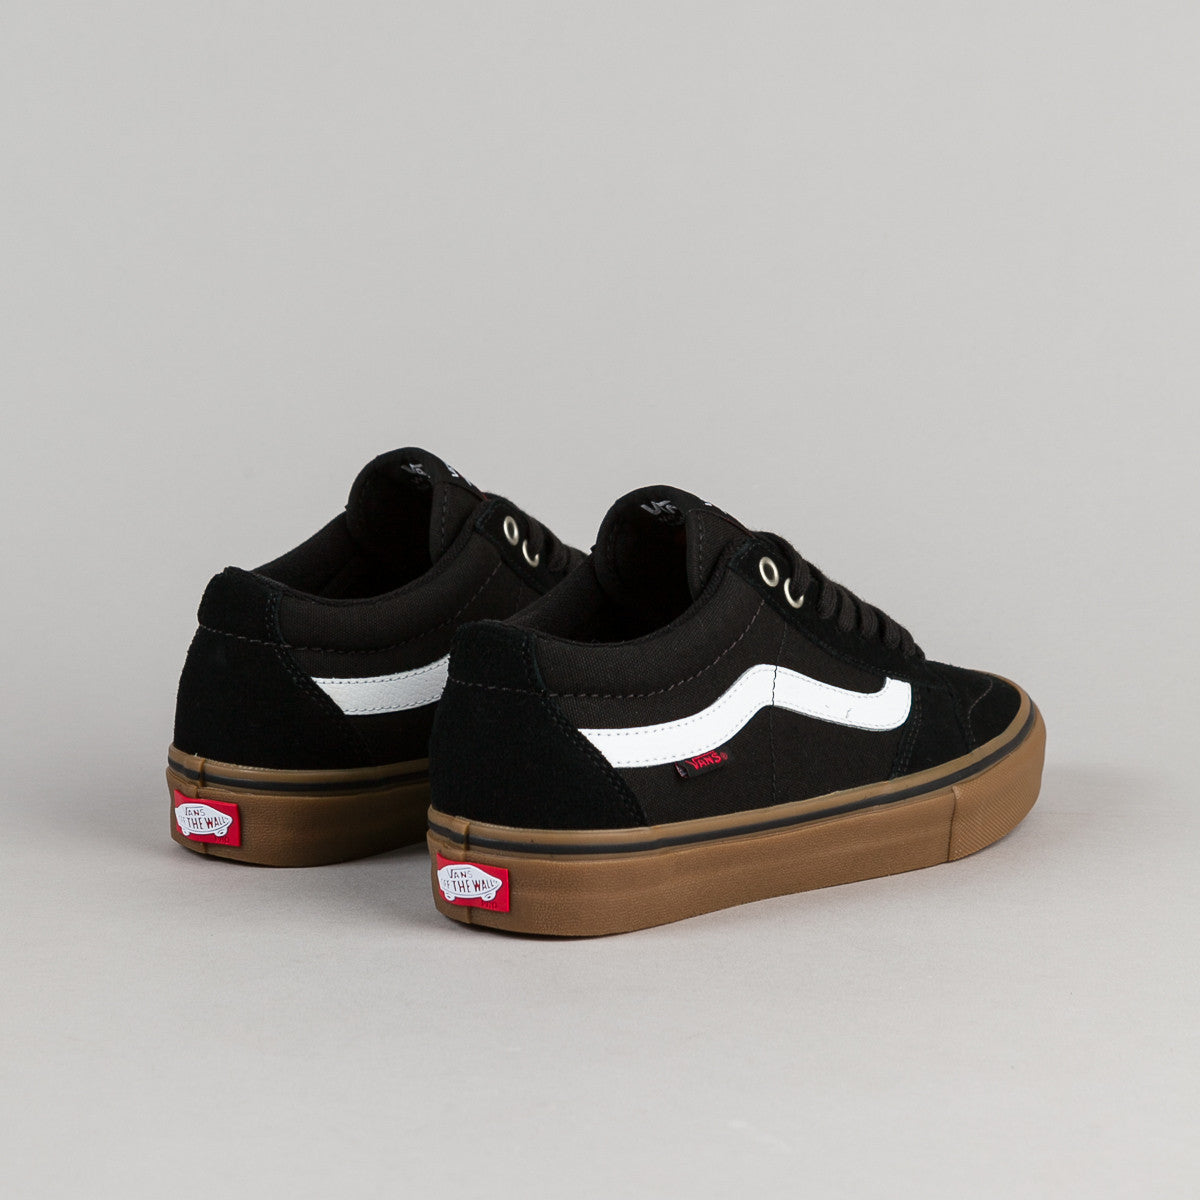 c8f4a6f13d vans tnt sg brown Sale